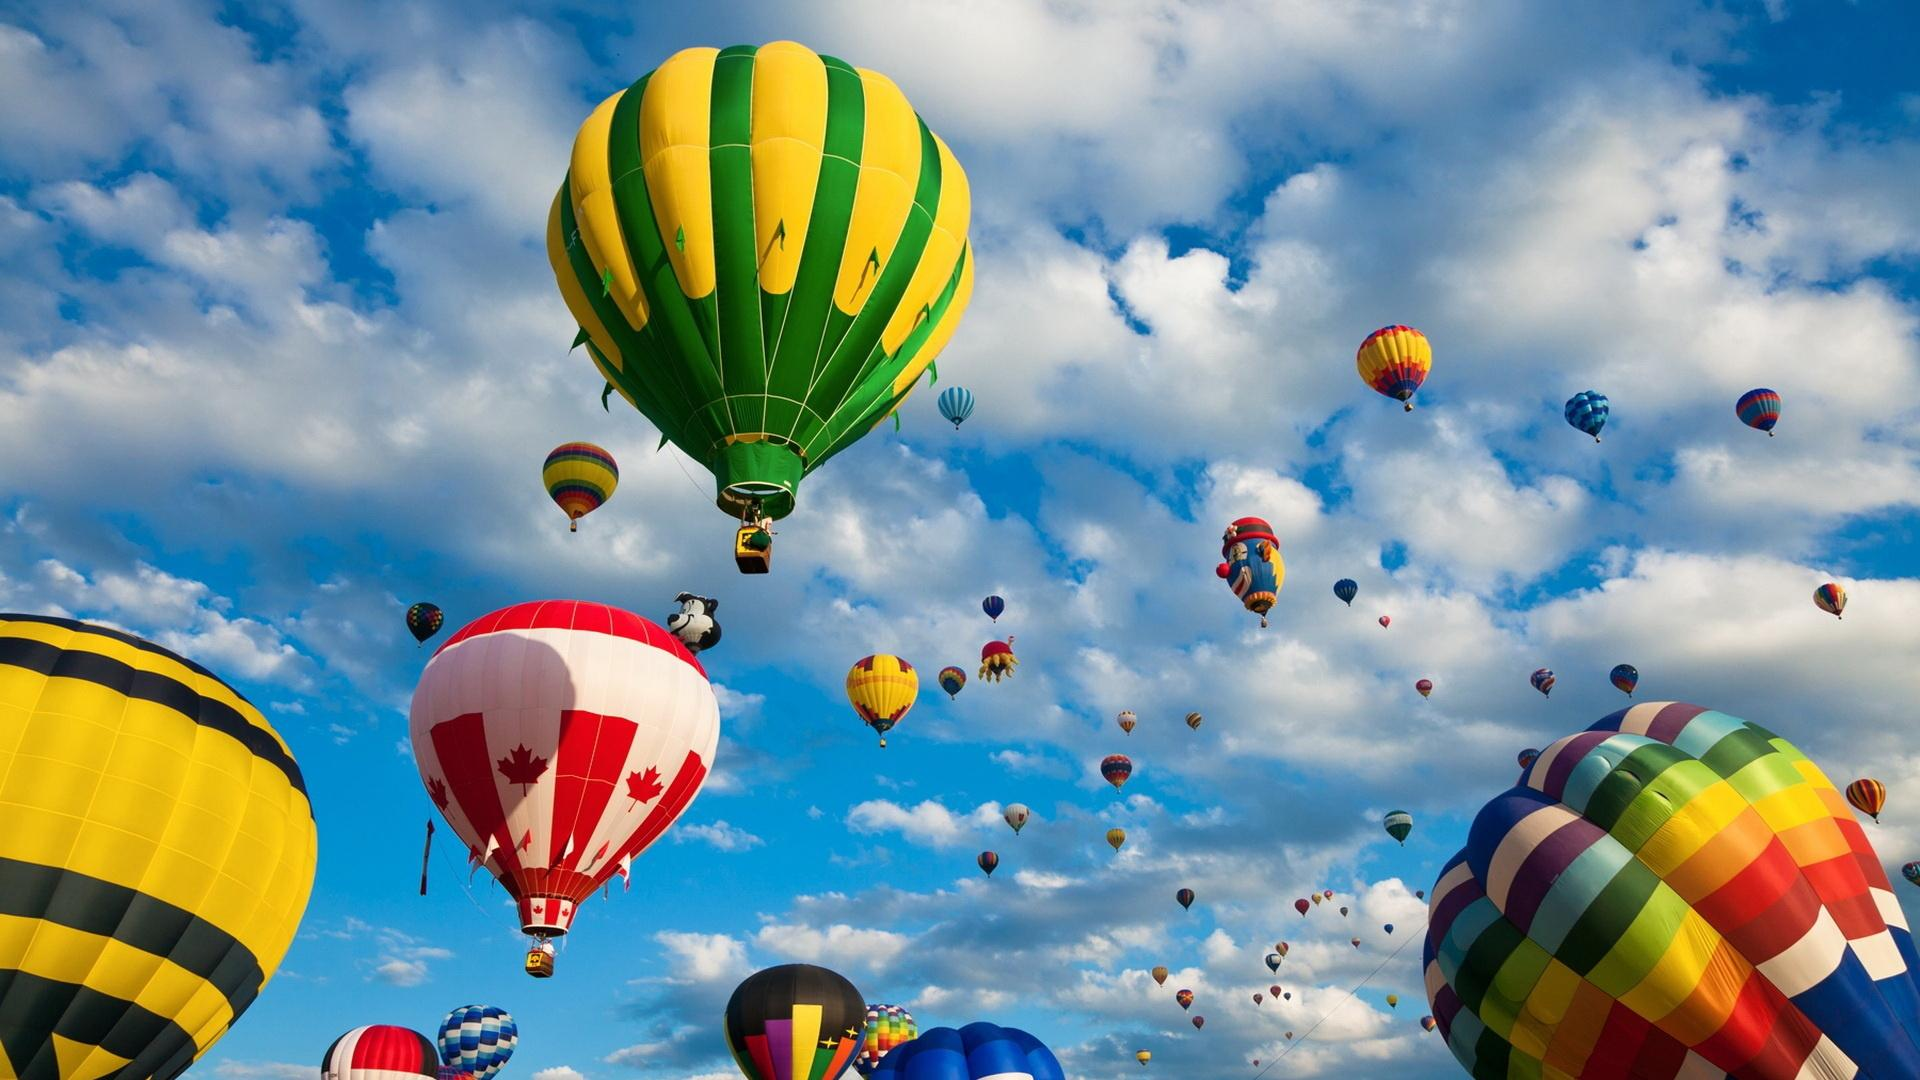 Ballons-In-the-Sky-wallpaper-wp3402835